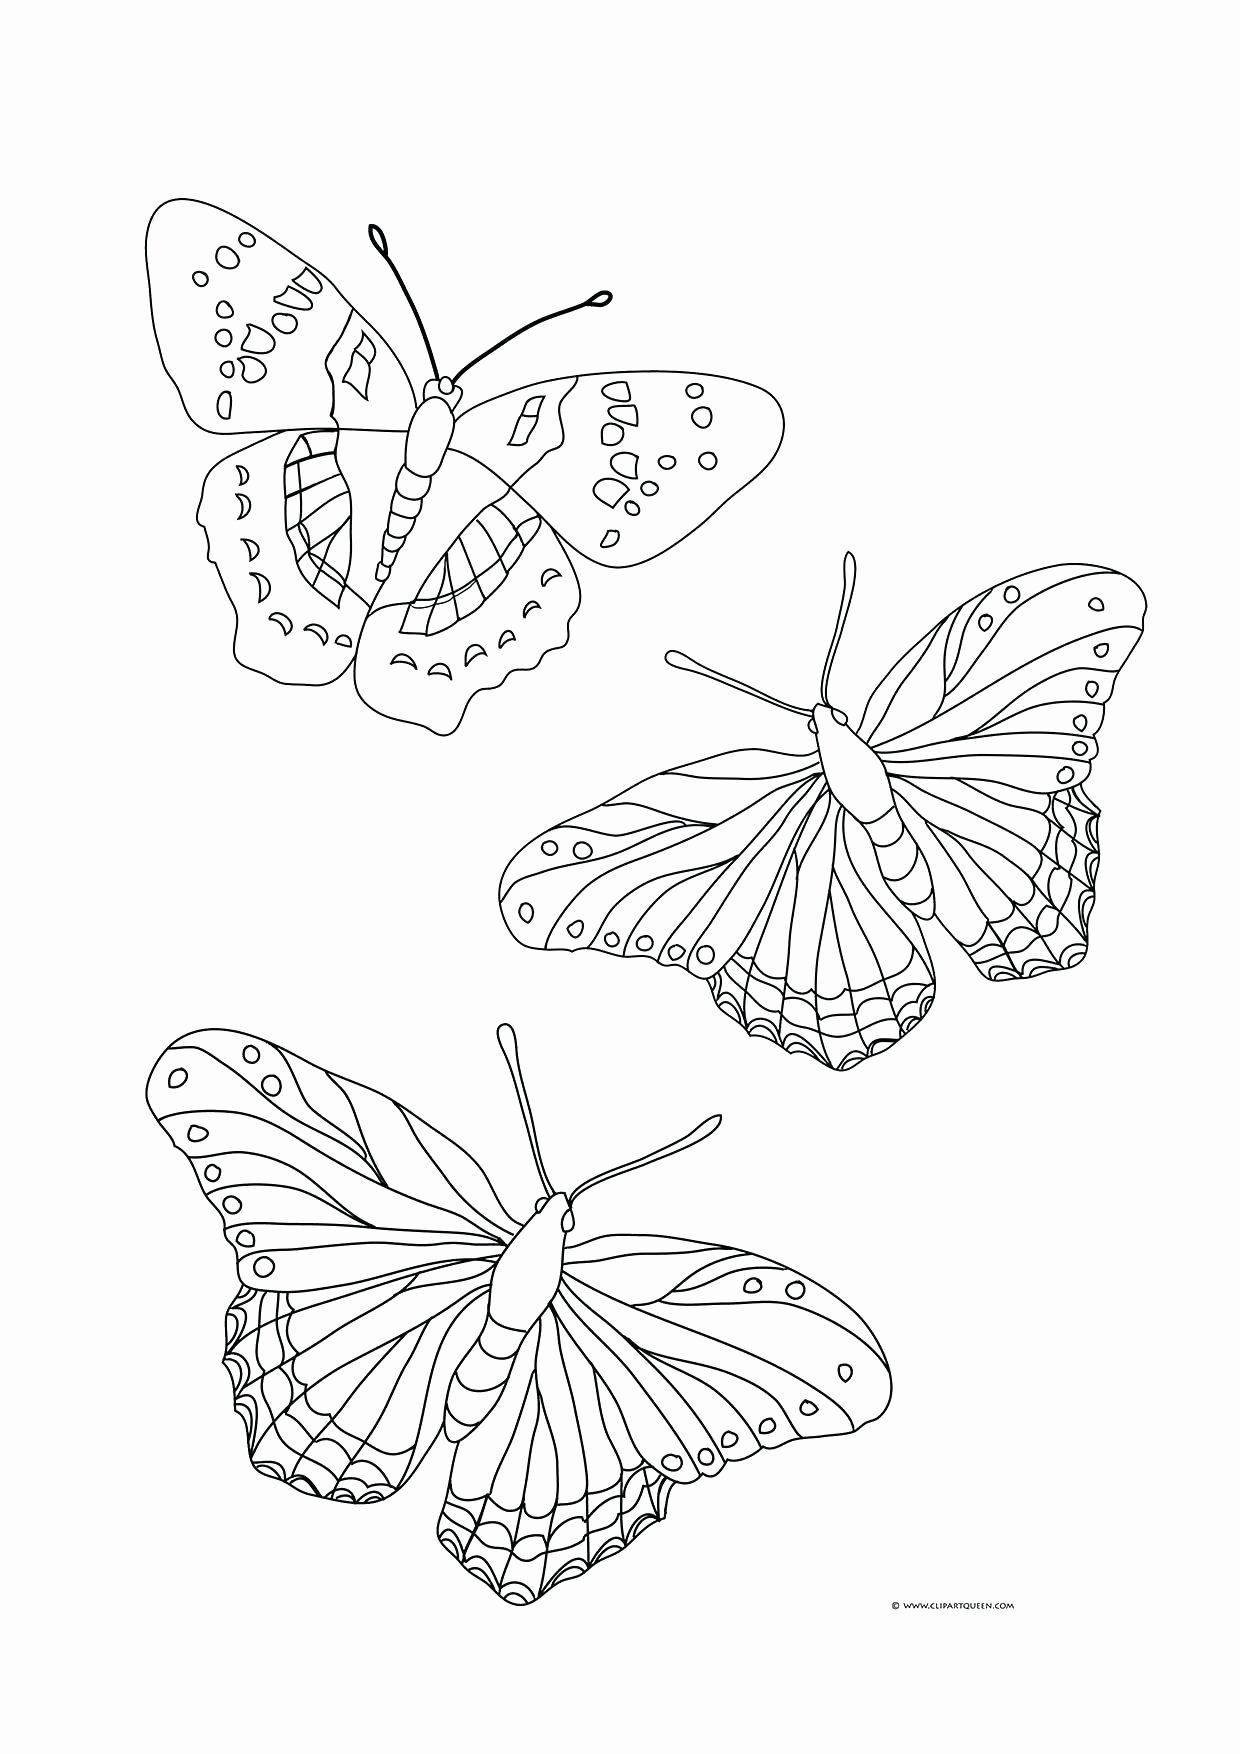 Butterfly With Flowers Coloring Pages New Images Of Butterflies Coloring Pages Amicuscolor Butterfly Coloring Page Free Coloring Pages Shape Coloring Pages